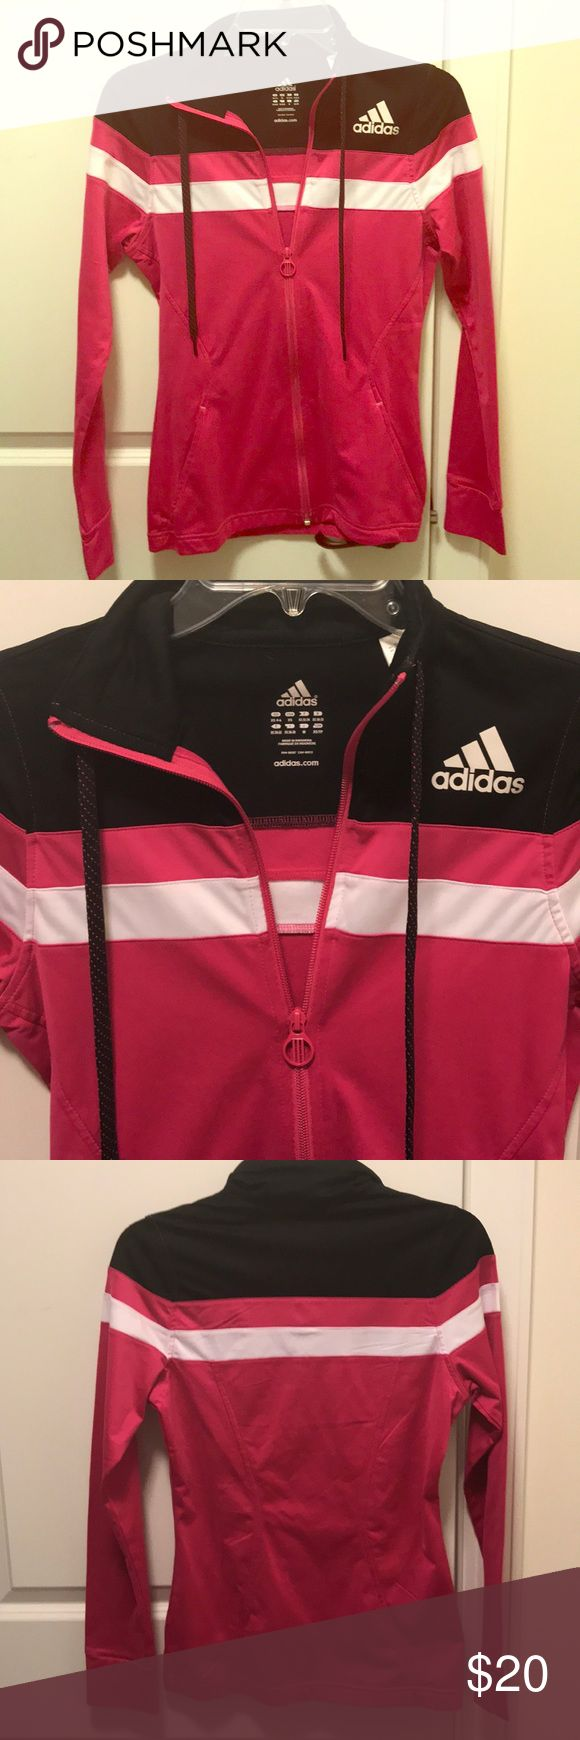 ADIDAS women's pink zip up jacket size XS Excellent condition pink/black/white Women's zip up jacket. Size XS adidas Tops Sweatshirts & Hoodies